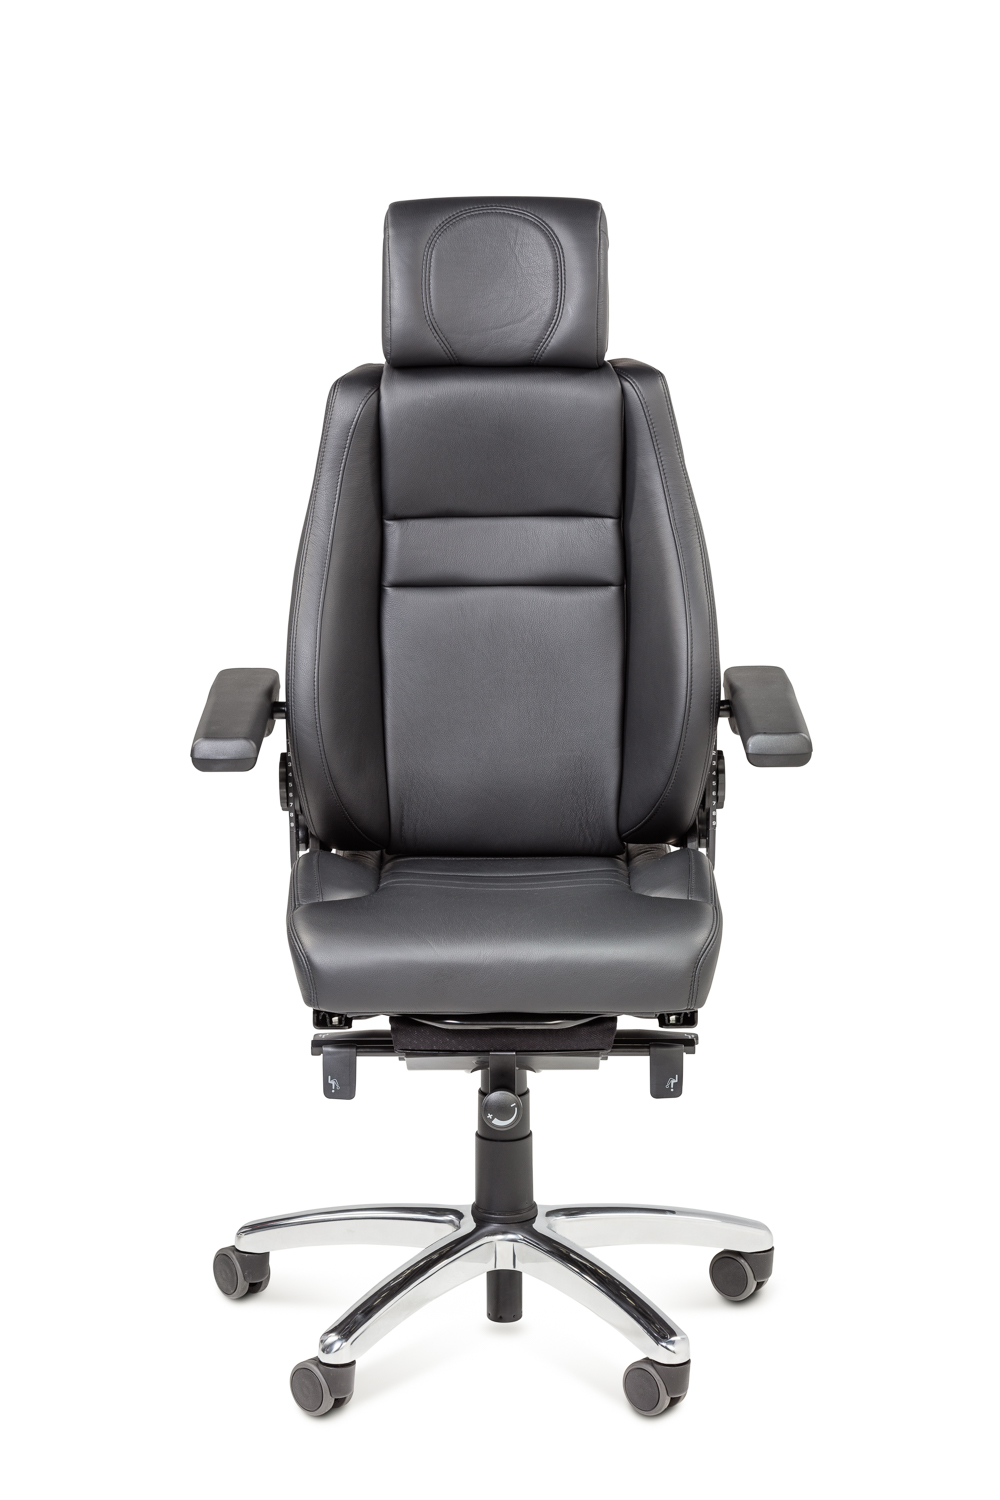 Product photography of a series of 24/7 controlroom chairs for BMA Ergonomics (SBS).